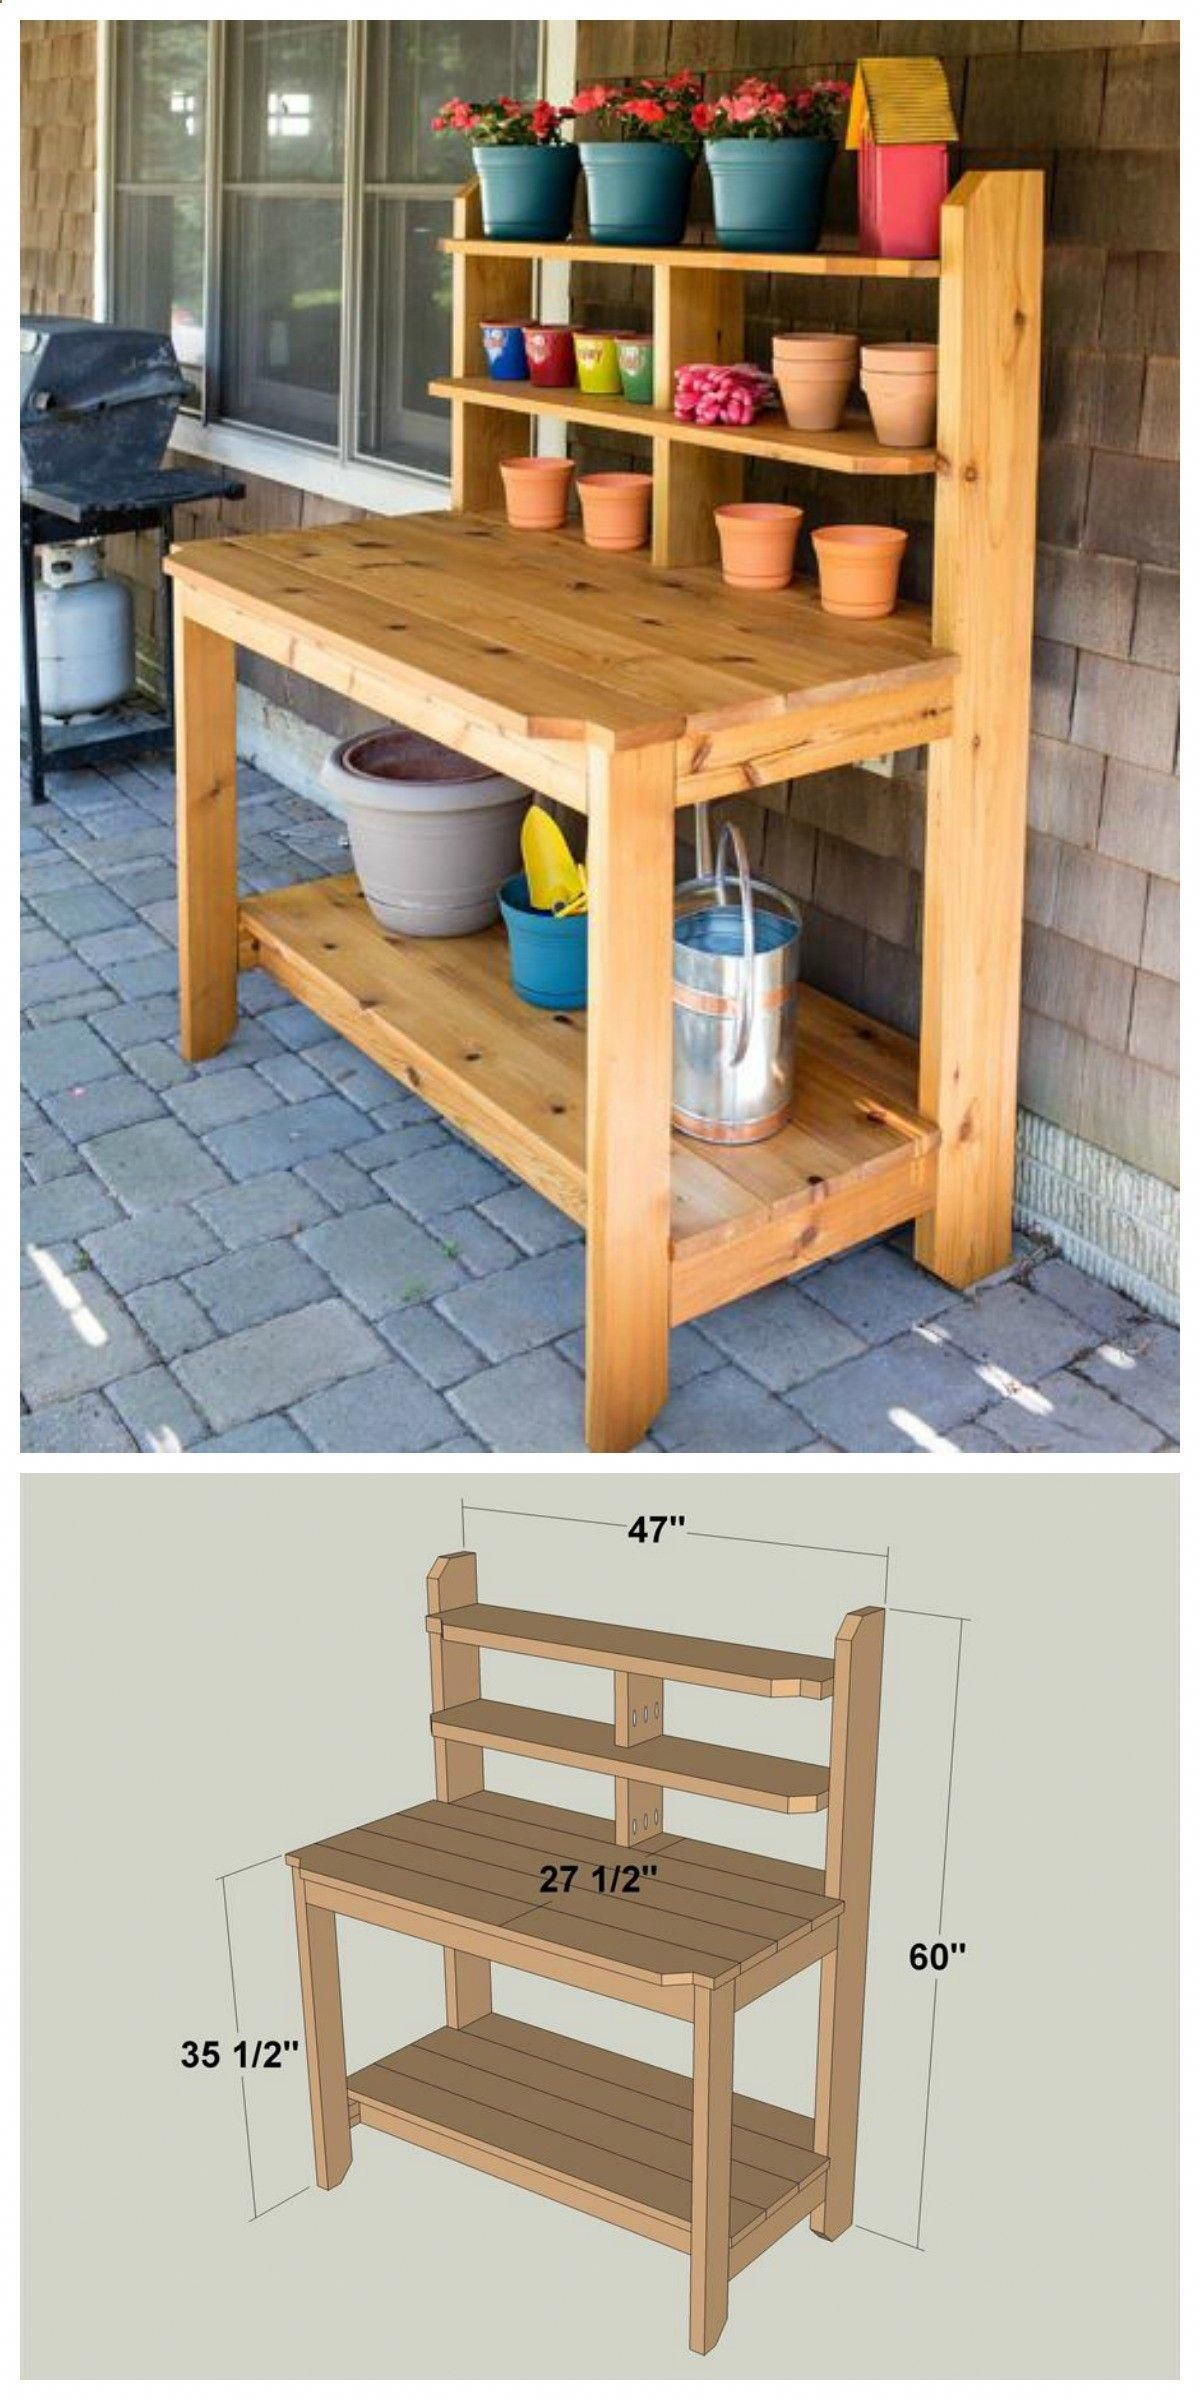 shed plans - diy built-to-last potting bench :: free plans at